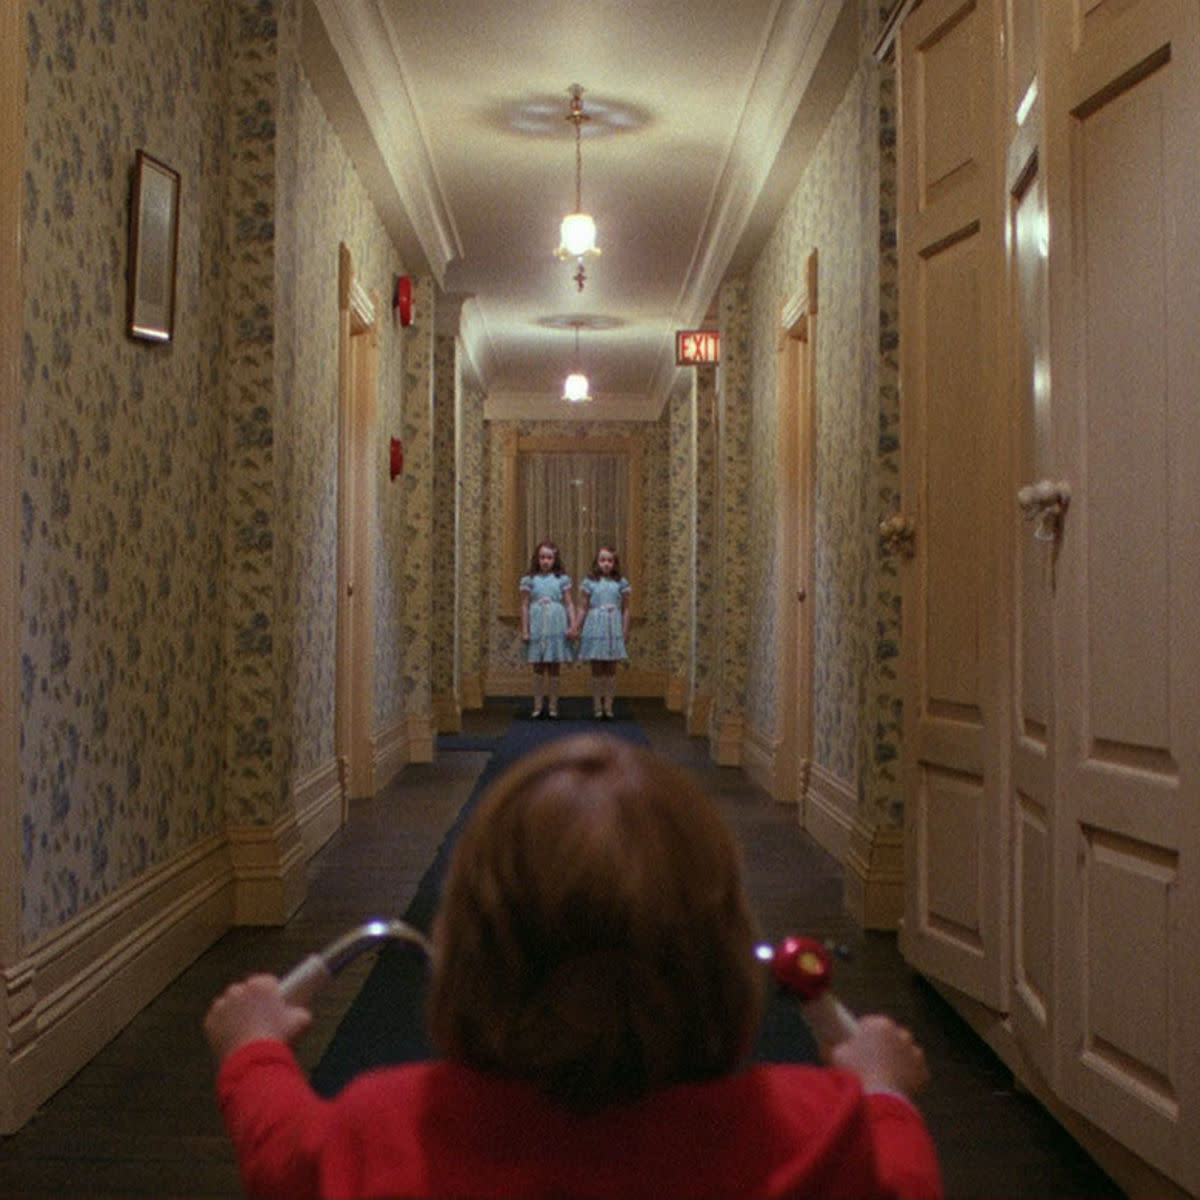 Impossible to Overlook: Set Design in 'The Shining'